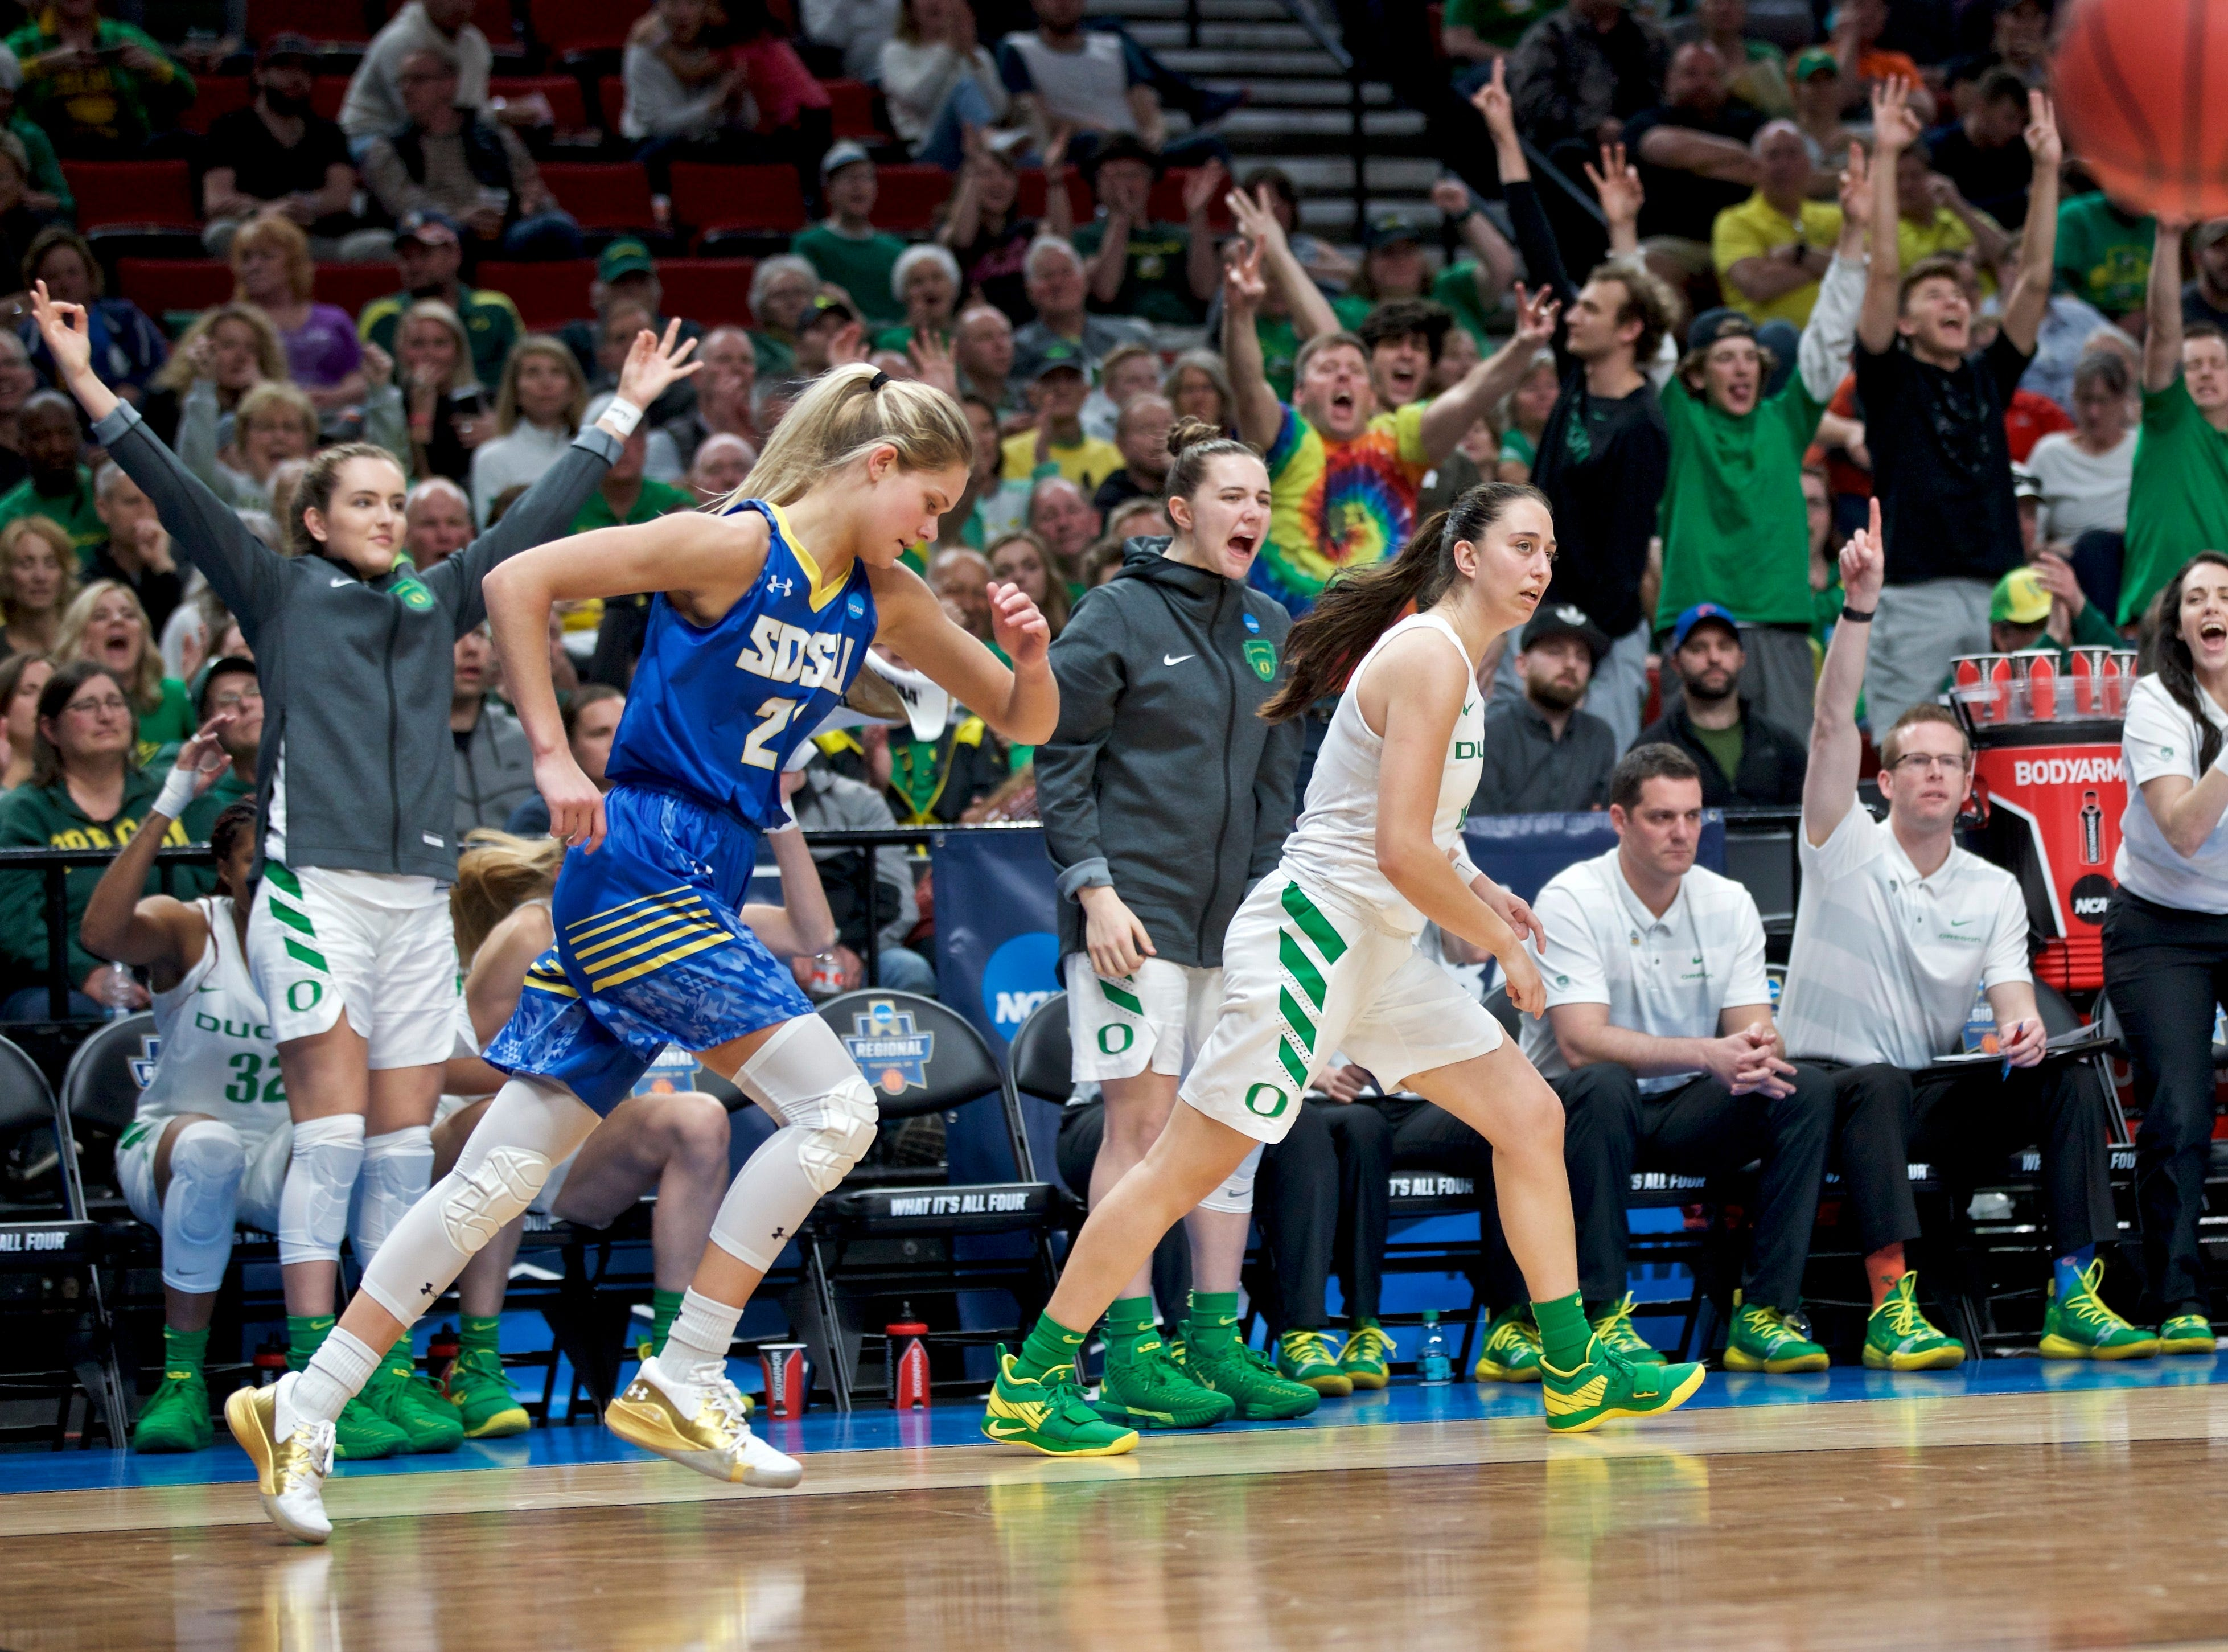 Oregon guard Taylor Chavez, left, and guard Morgan Yaeger, second from right, react after guard Maite Cazorla made a 3-point basket over South Dakota State guard Tylee Irwin, front left, during the second half of a regional semifinal in the NCAA women's college basketball tournament Friday, March 29, 2019, in Portland, Ore. Oregon won 63-53. (AP Photo/Craig Mitchelldyer)